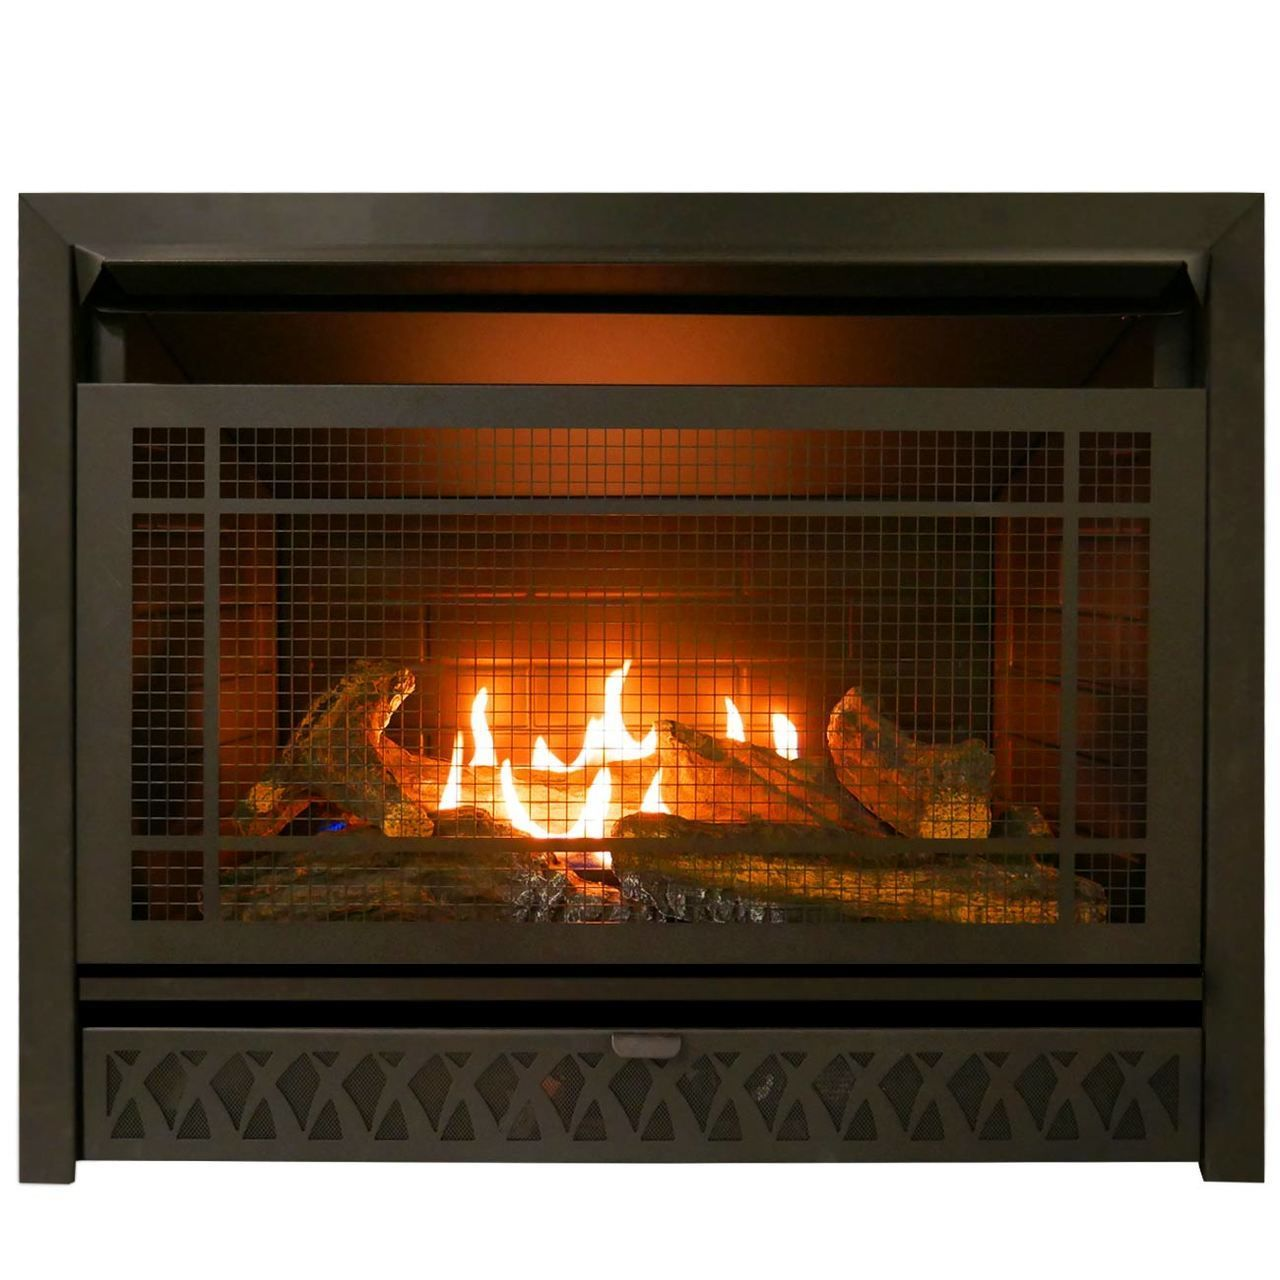 36 Fireplace Insert Awesome Pro Fireplaces 29 In Ventless Dual Fuel Firebox Insert